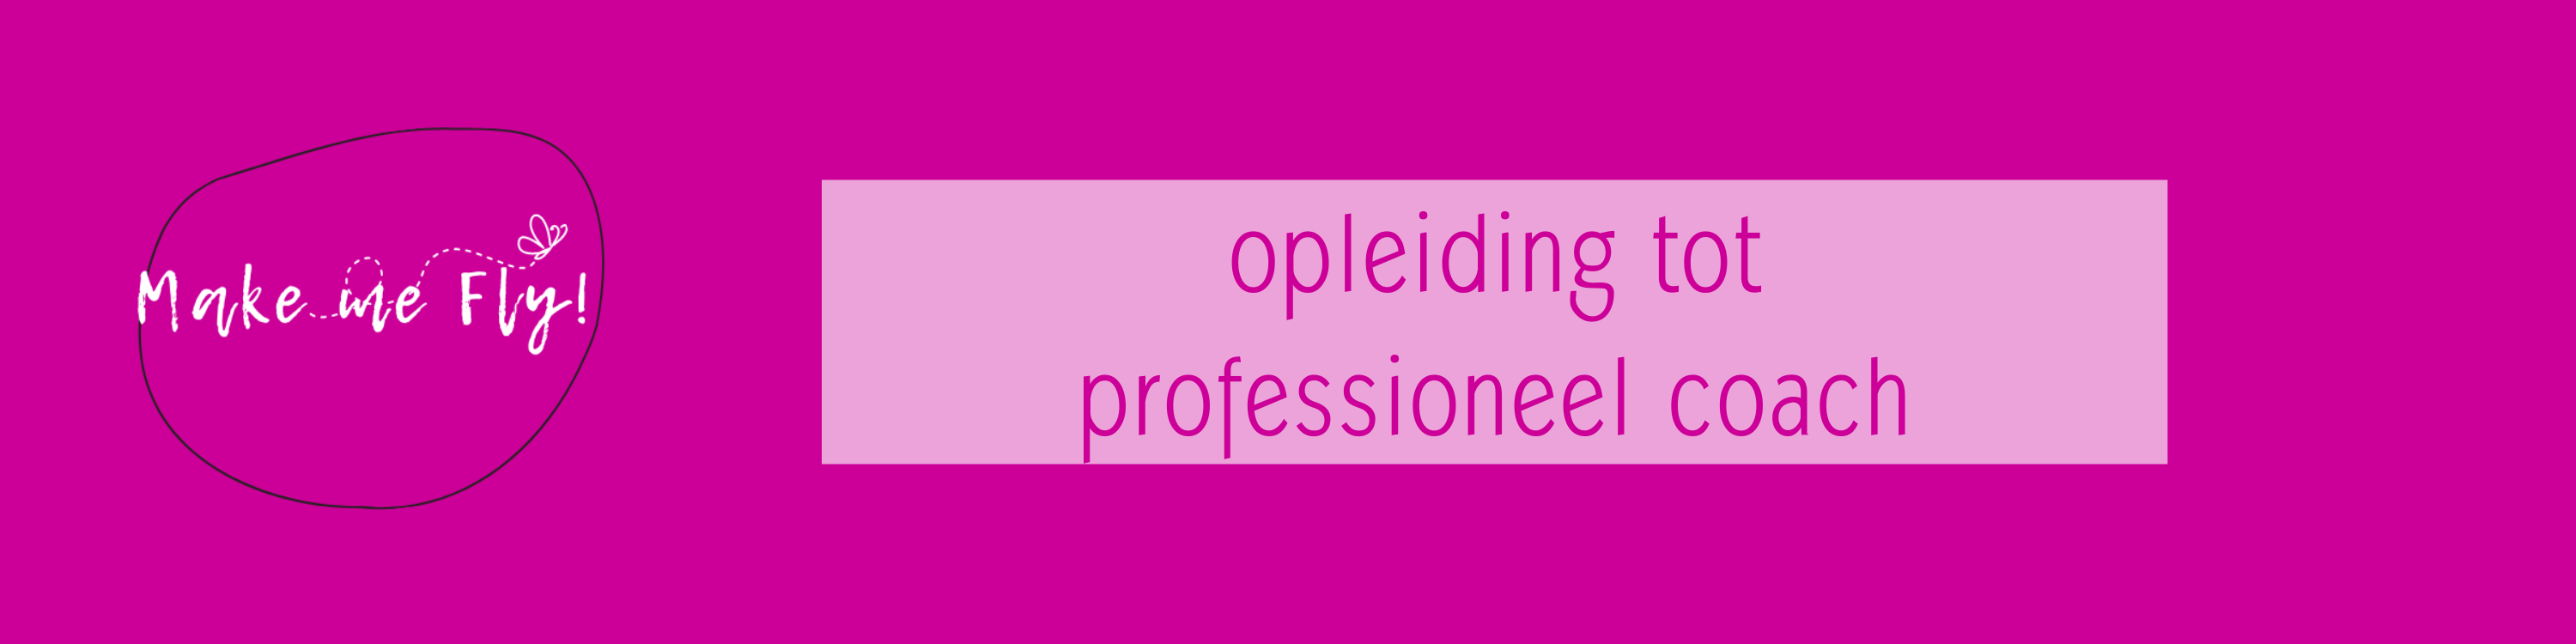 Make me Fly! opleiding tot professioneel coach banner